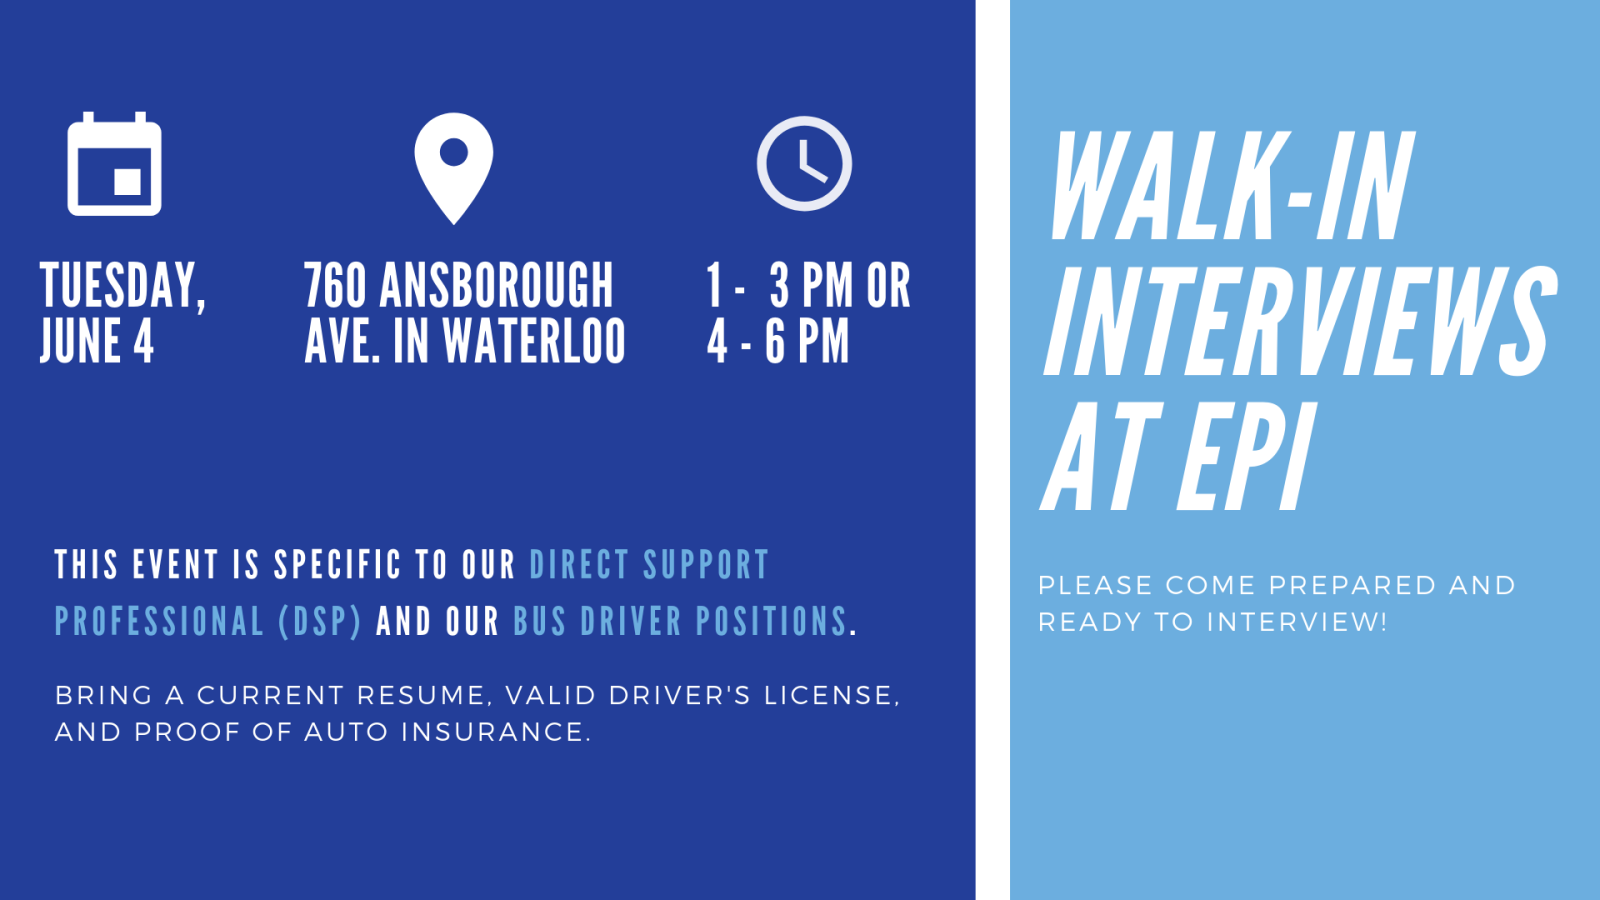 Walk-In Interviews at EPI